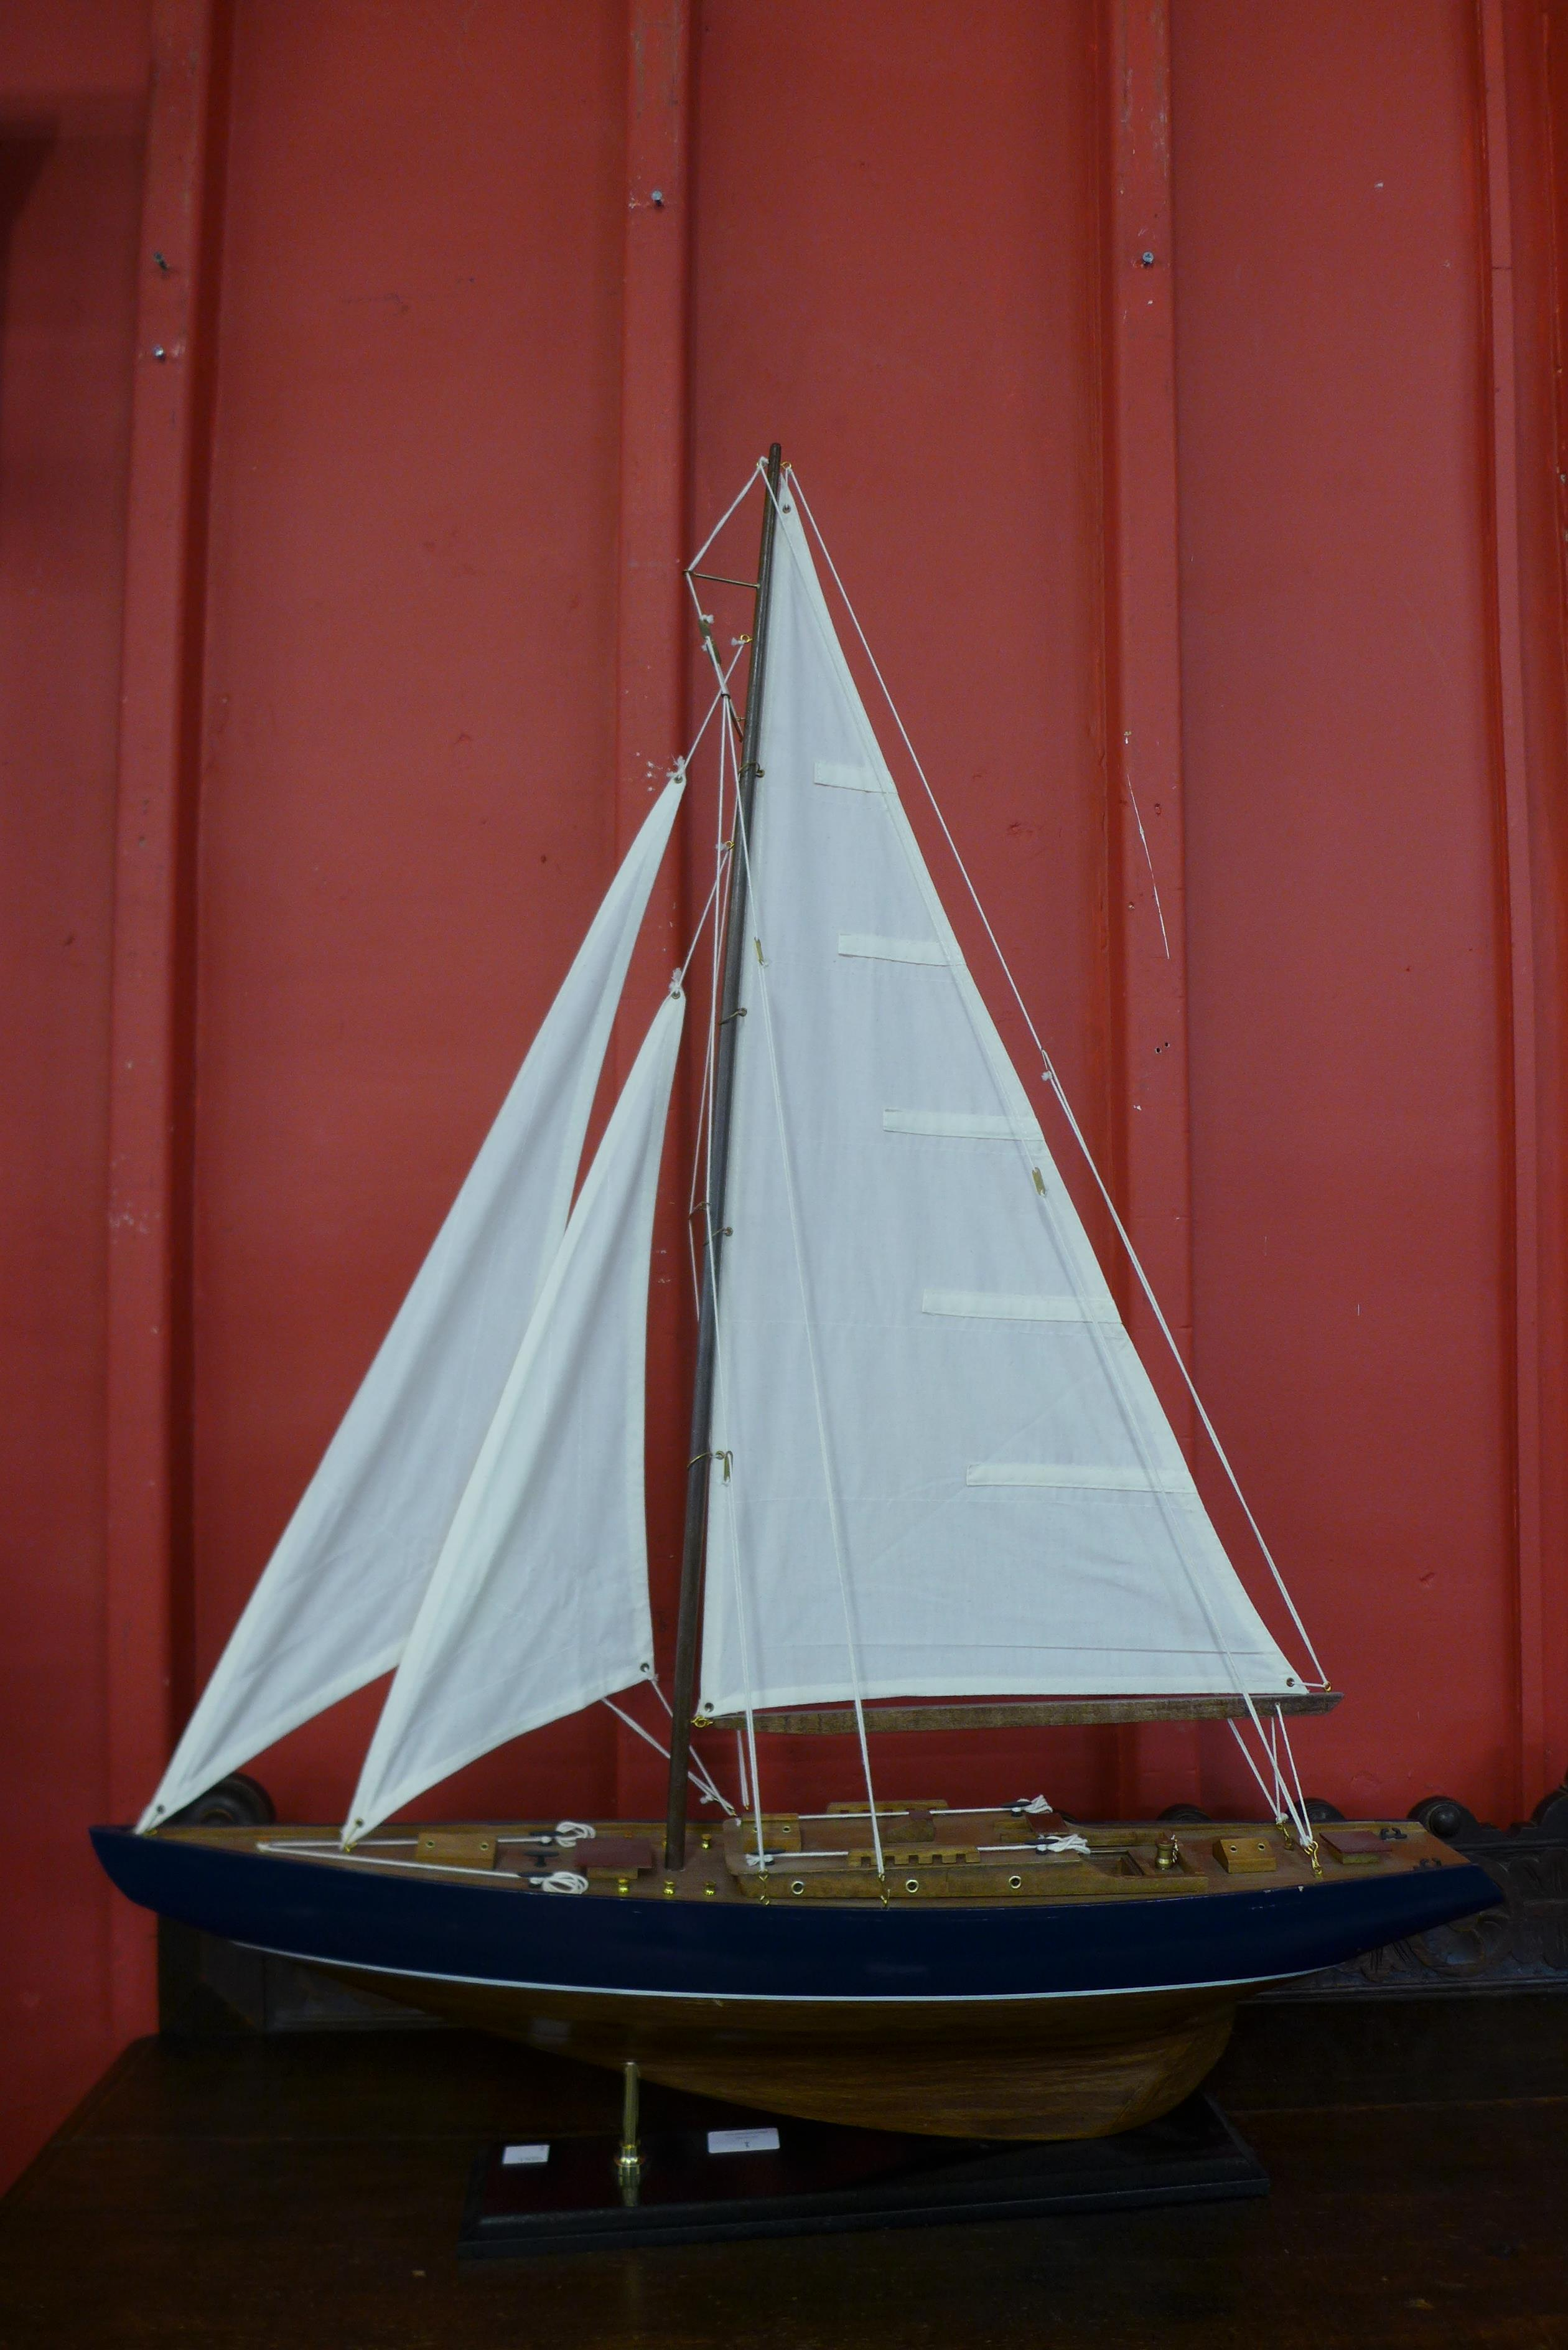 A scale model of a fully rigged yacht